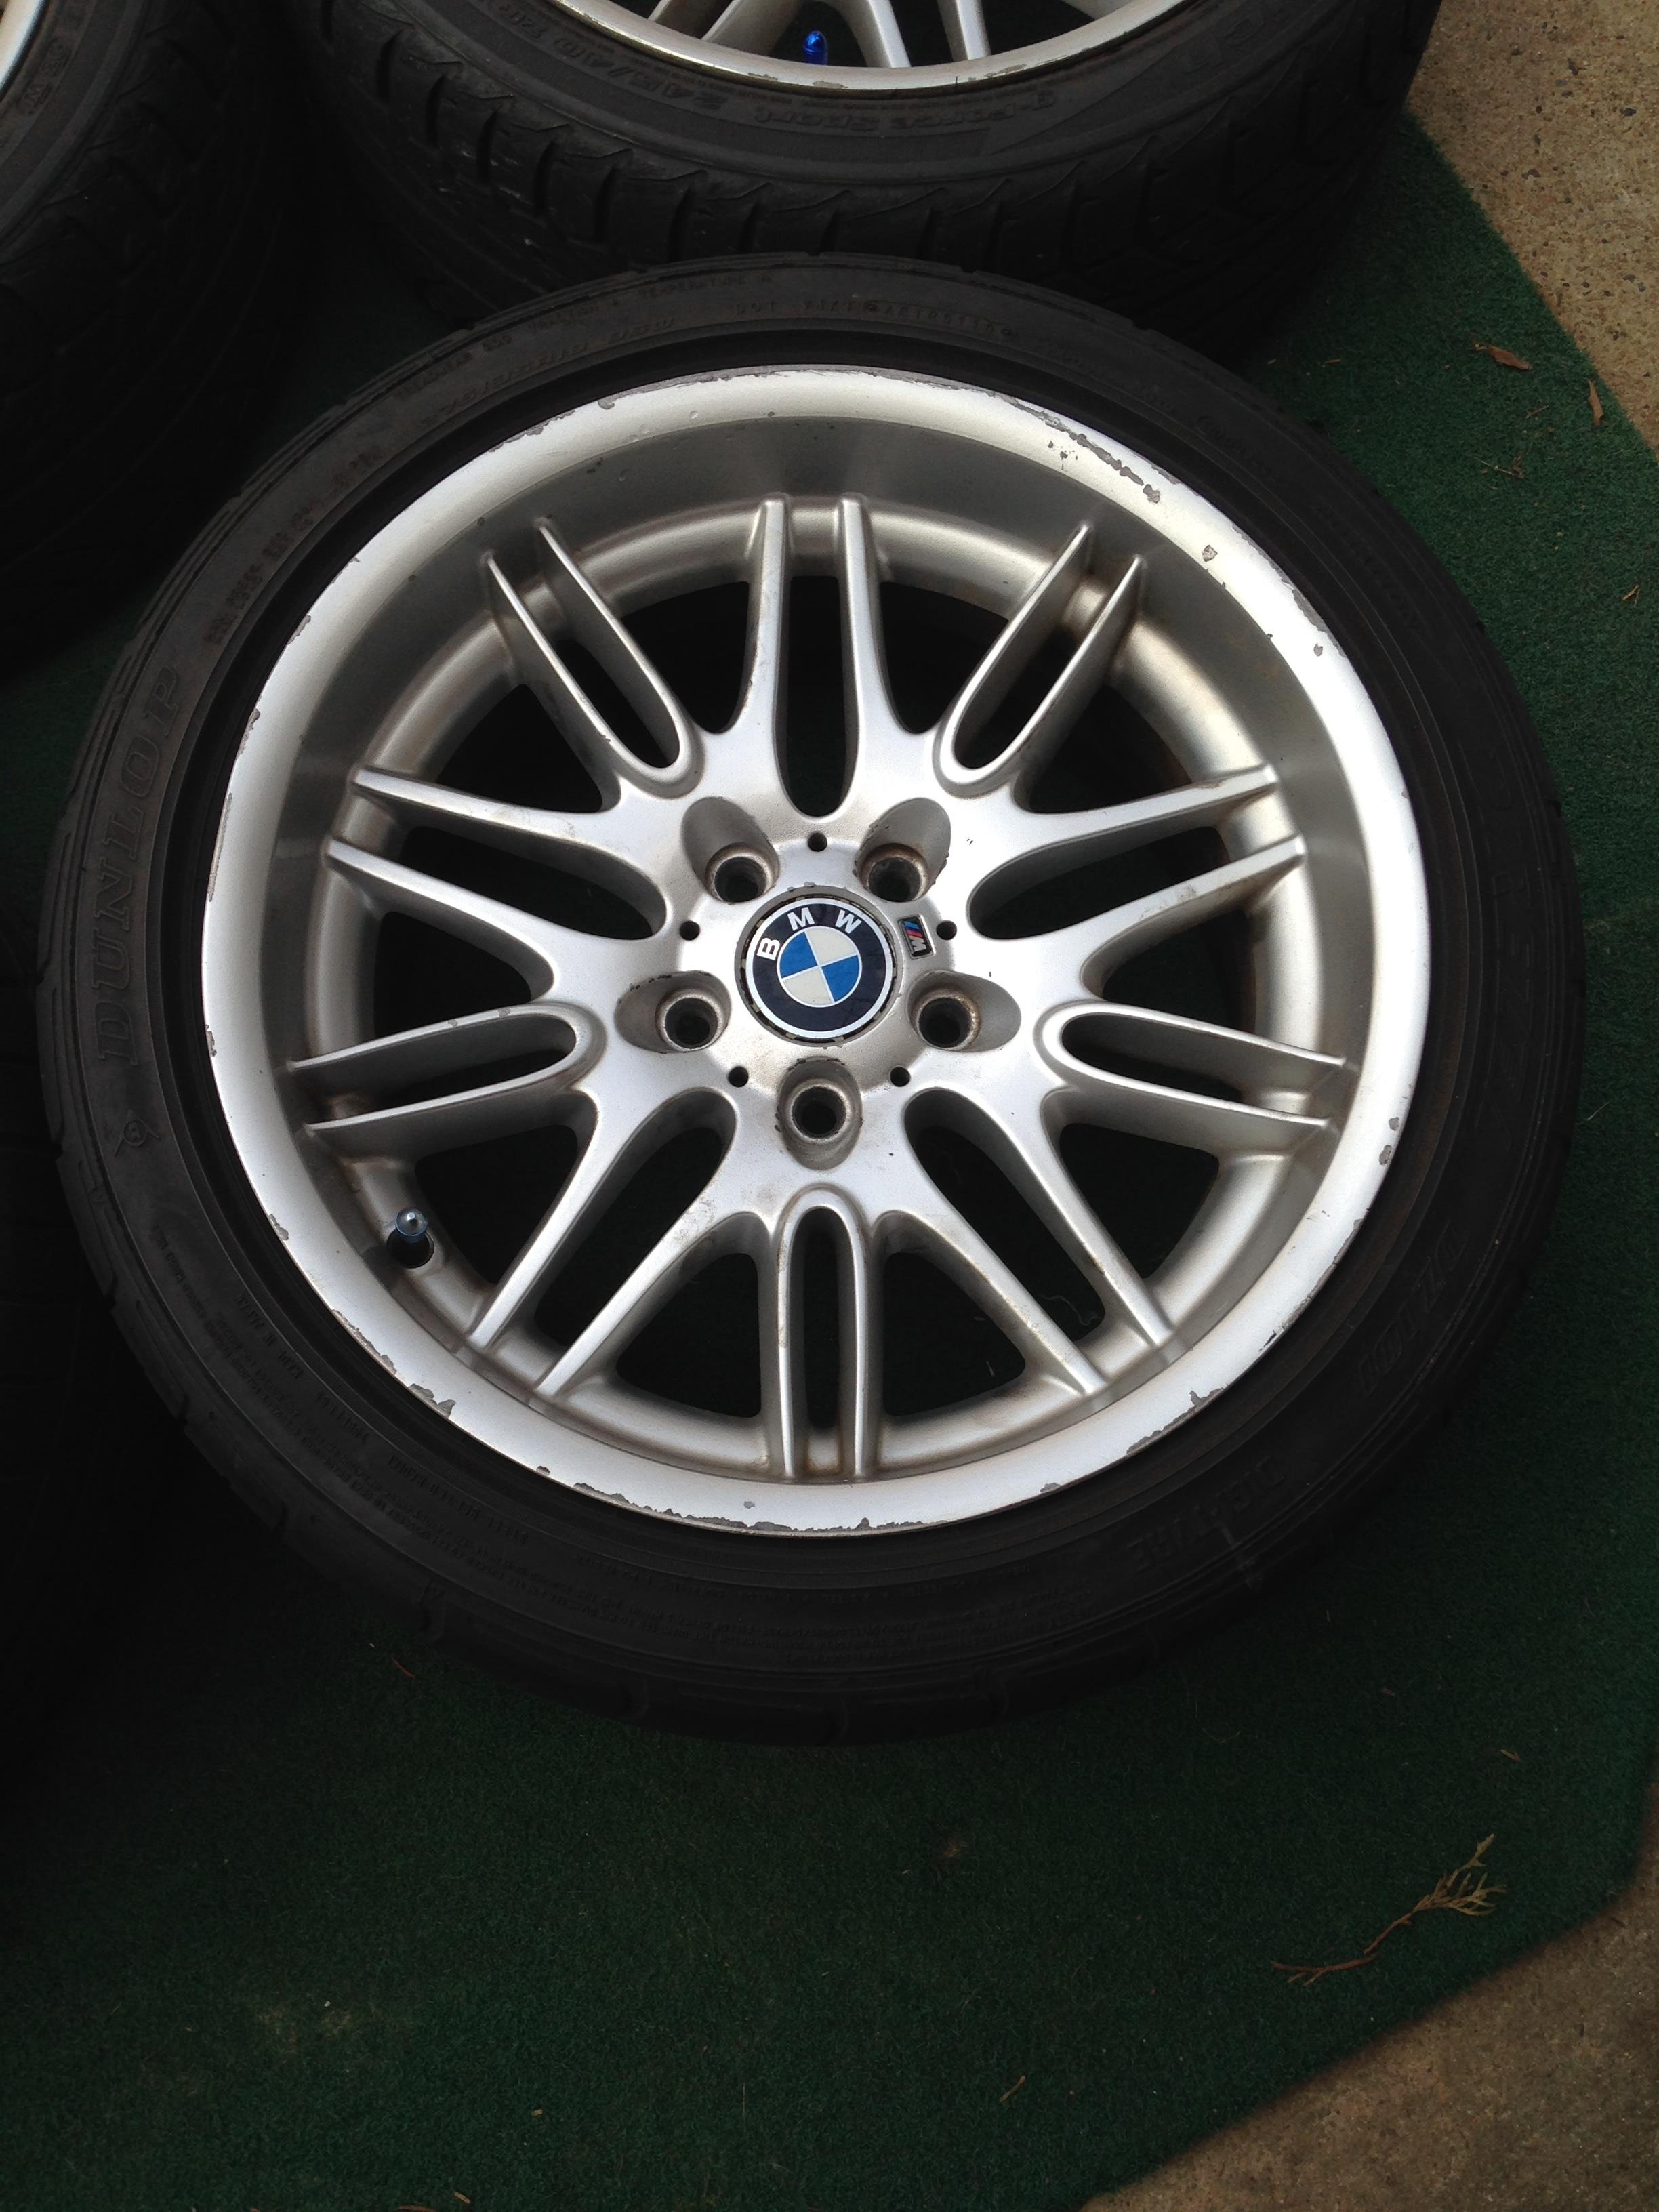 E39 96 03 For Sale Style 65 Wheels For Sale With Decent Tread 600 Bmw M5 Forum And M6 Forums